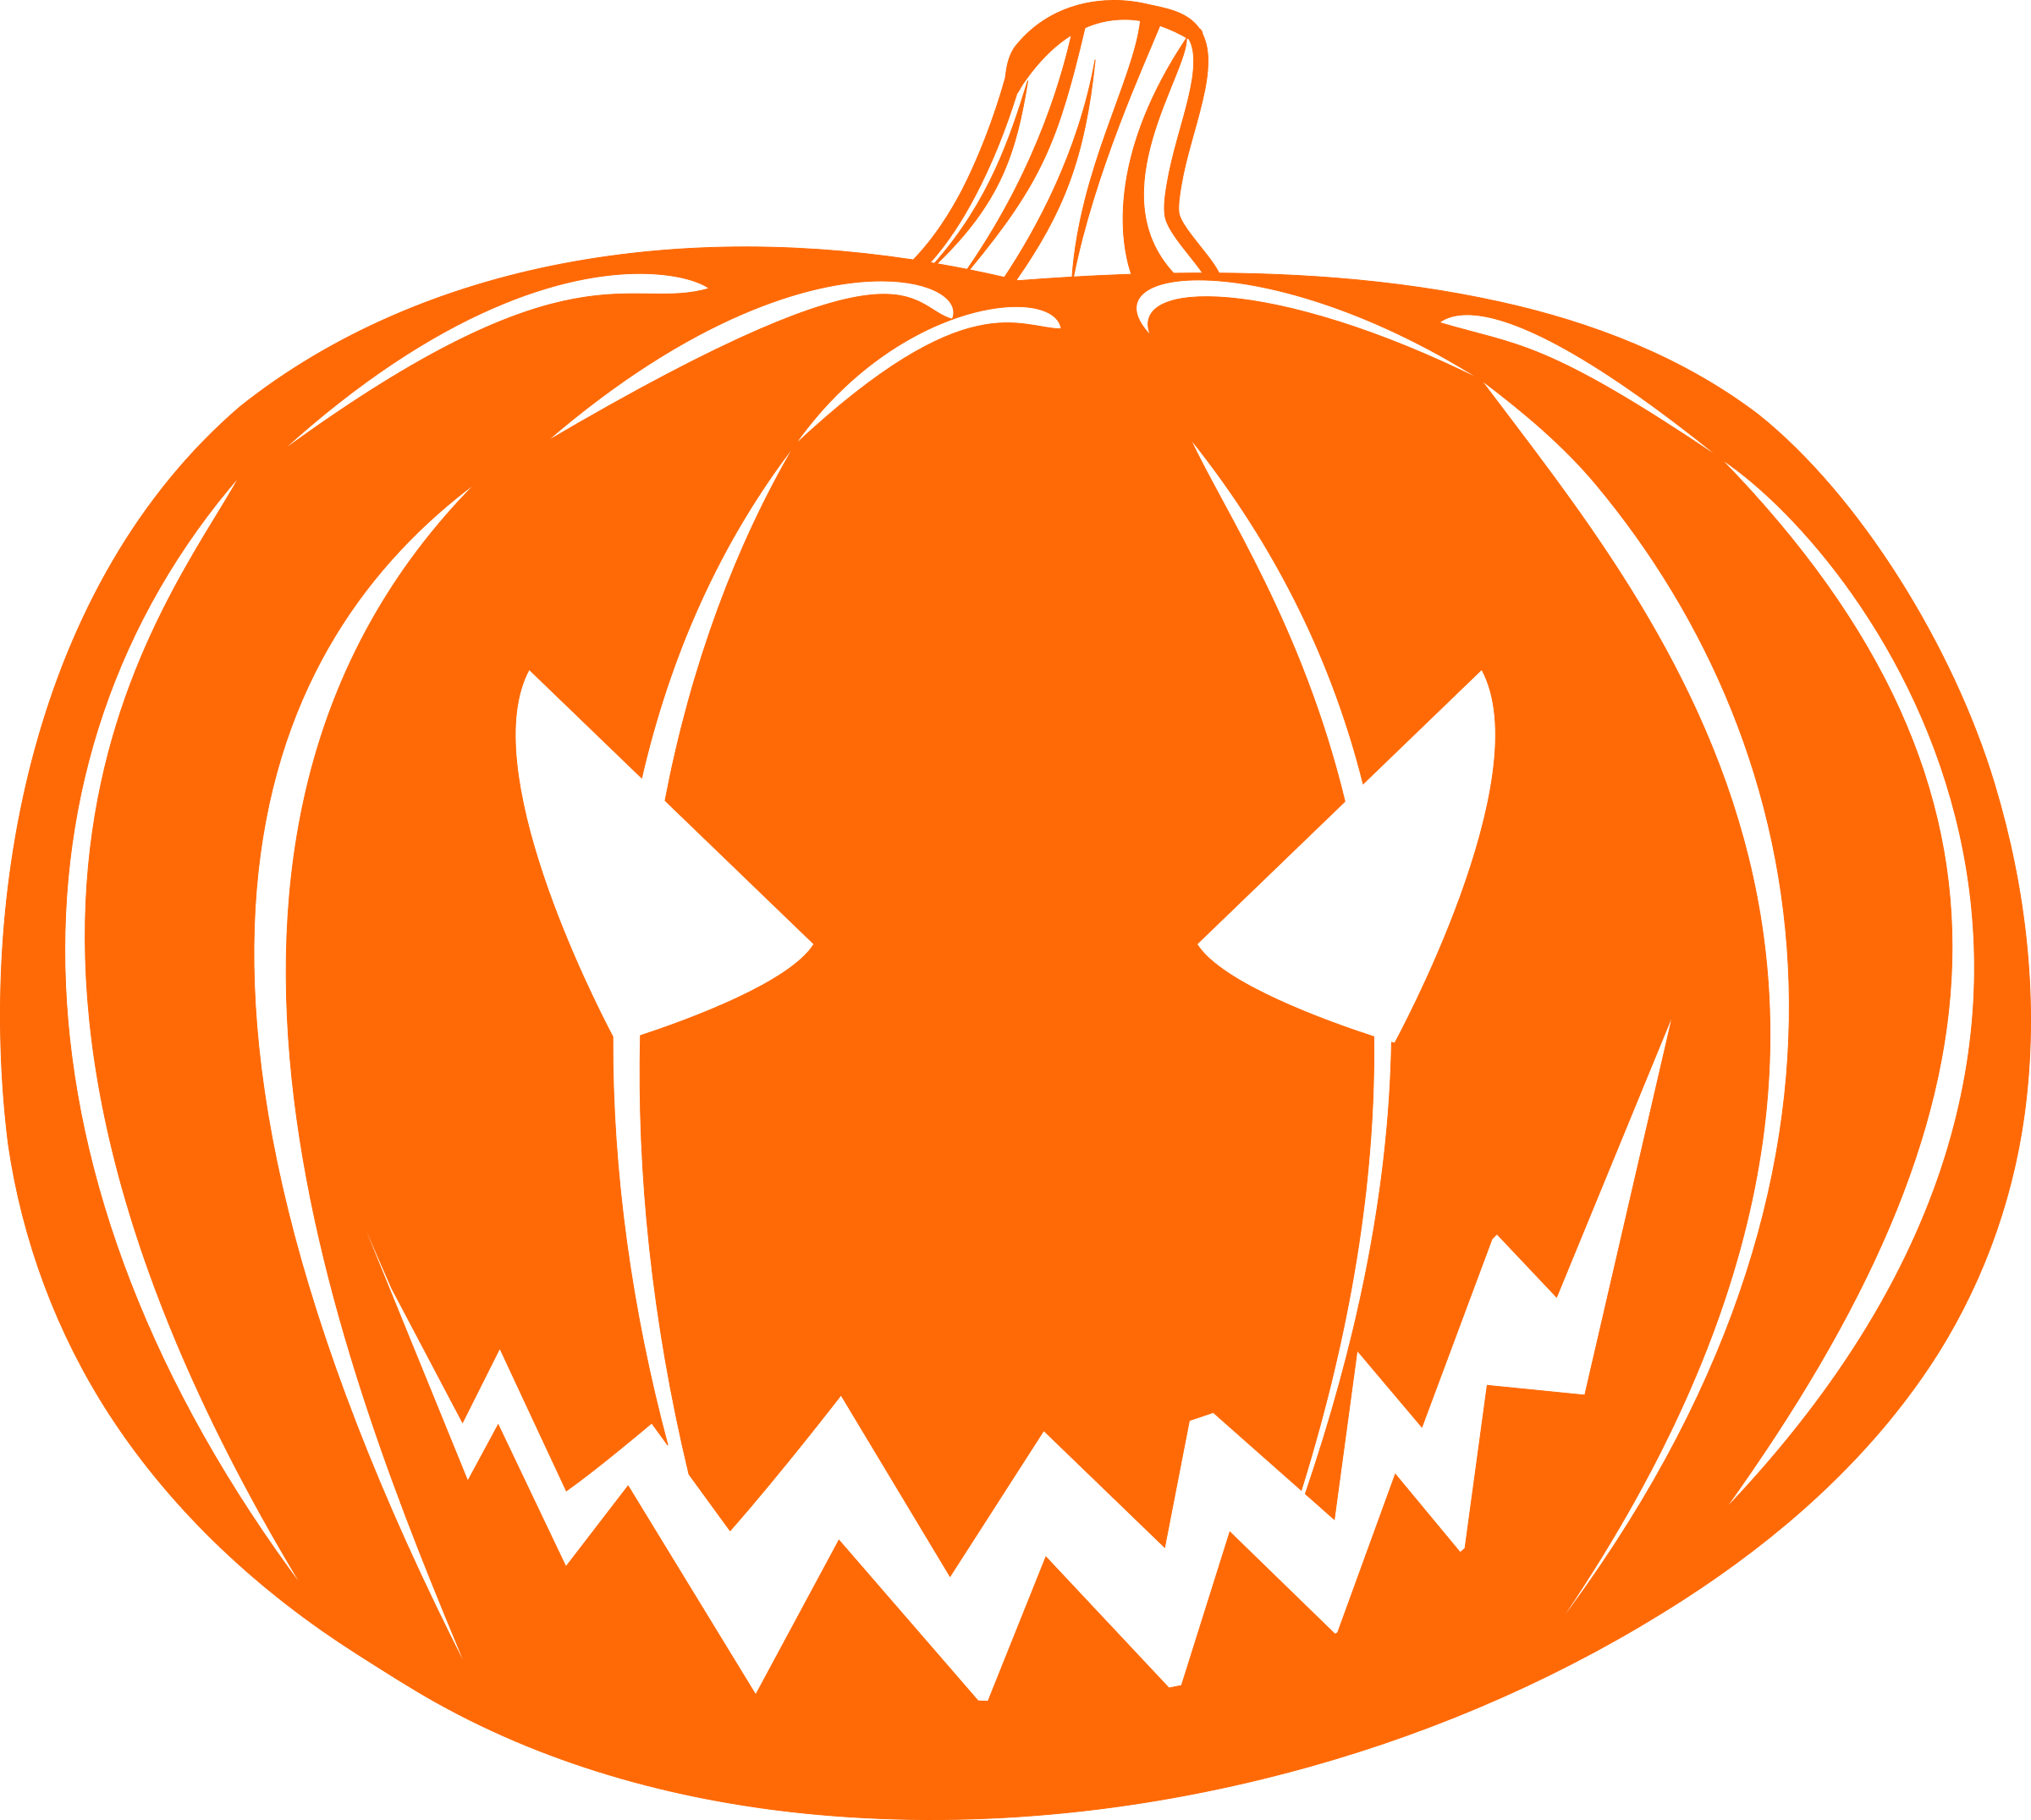 clipart scary jack o lantern rh openclipart org jack o'lantern clipart black and white jack o'lantern clipart black and white